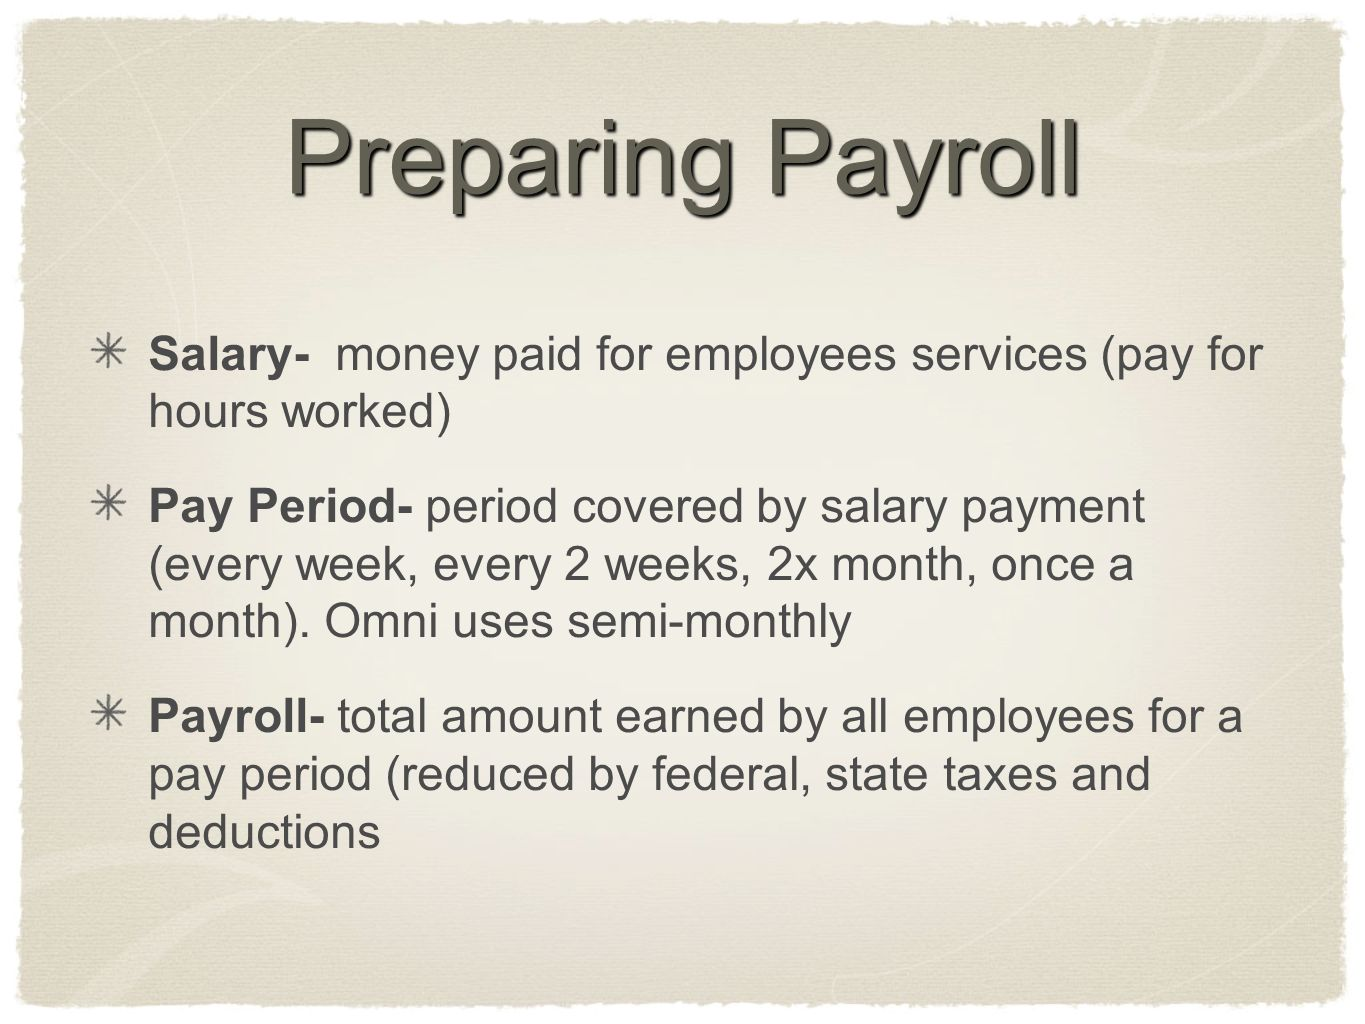 Preparing Payroll Salary- money paid for employees services (pay for hours worked)